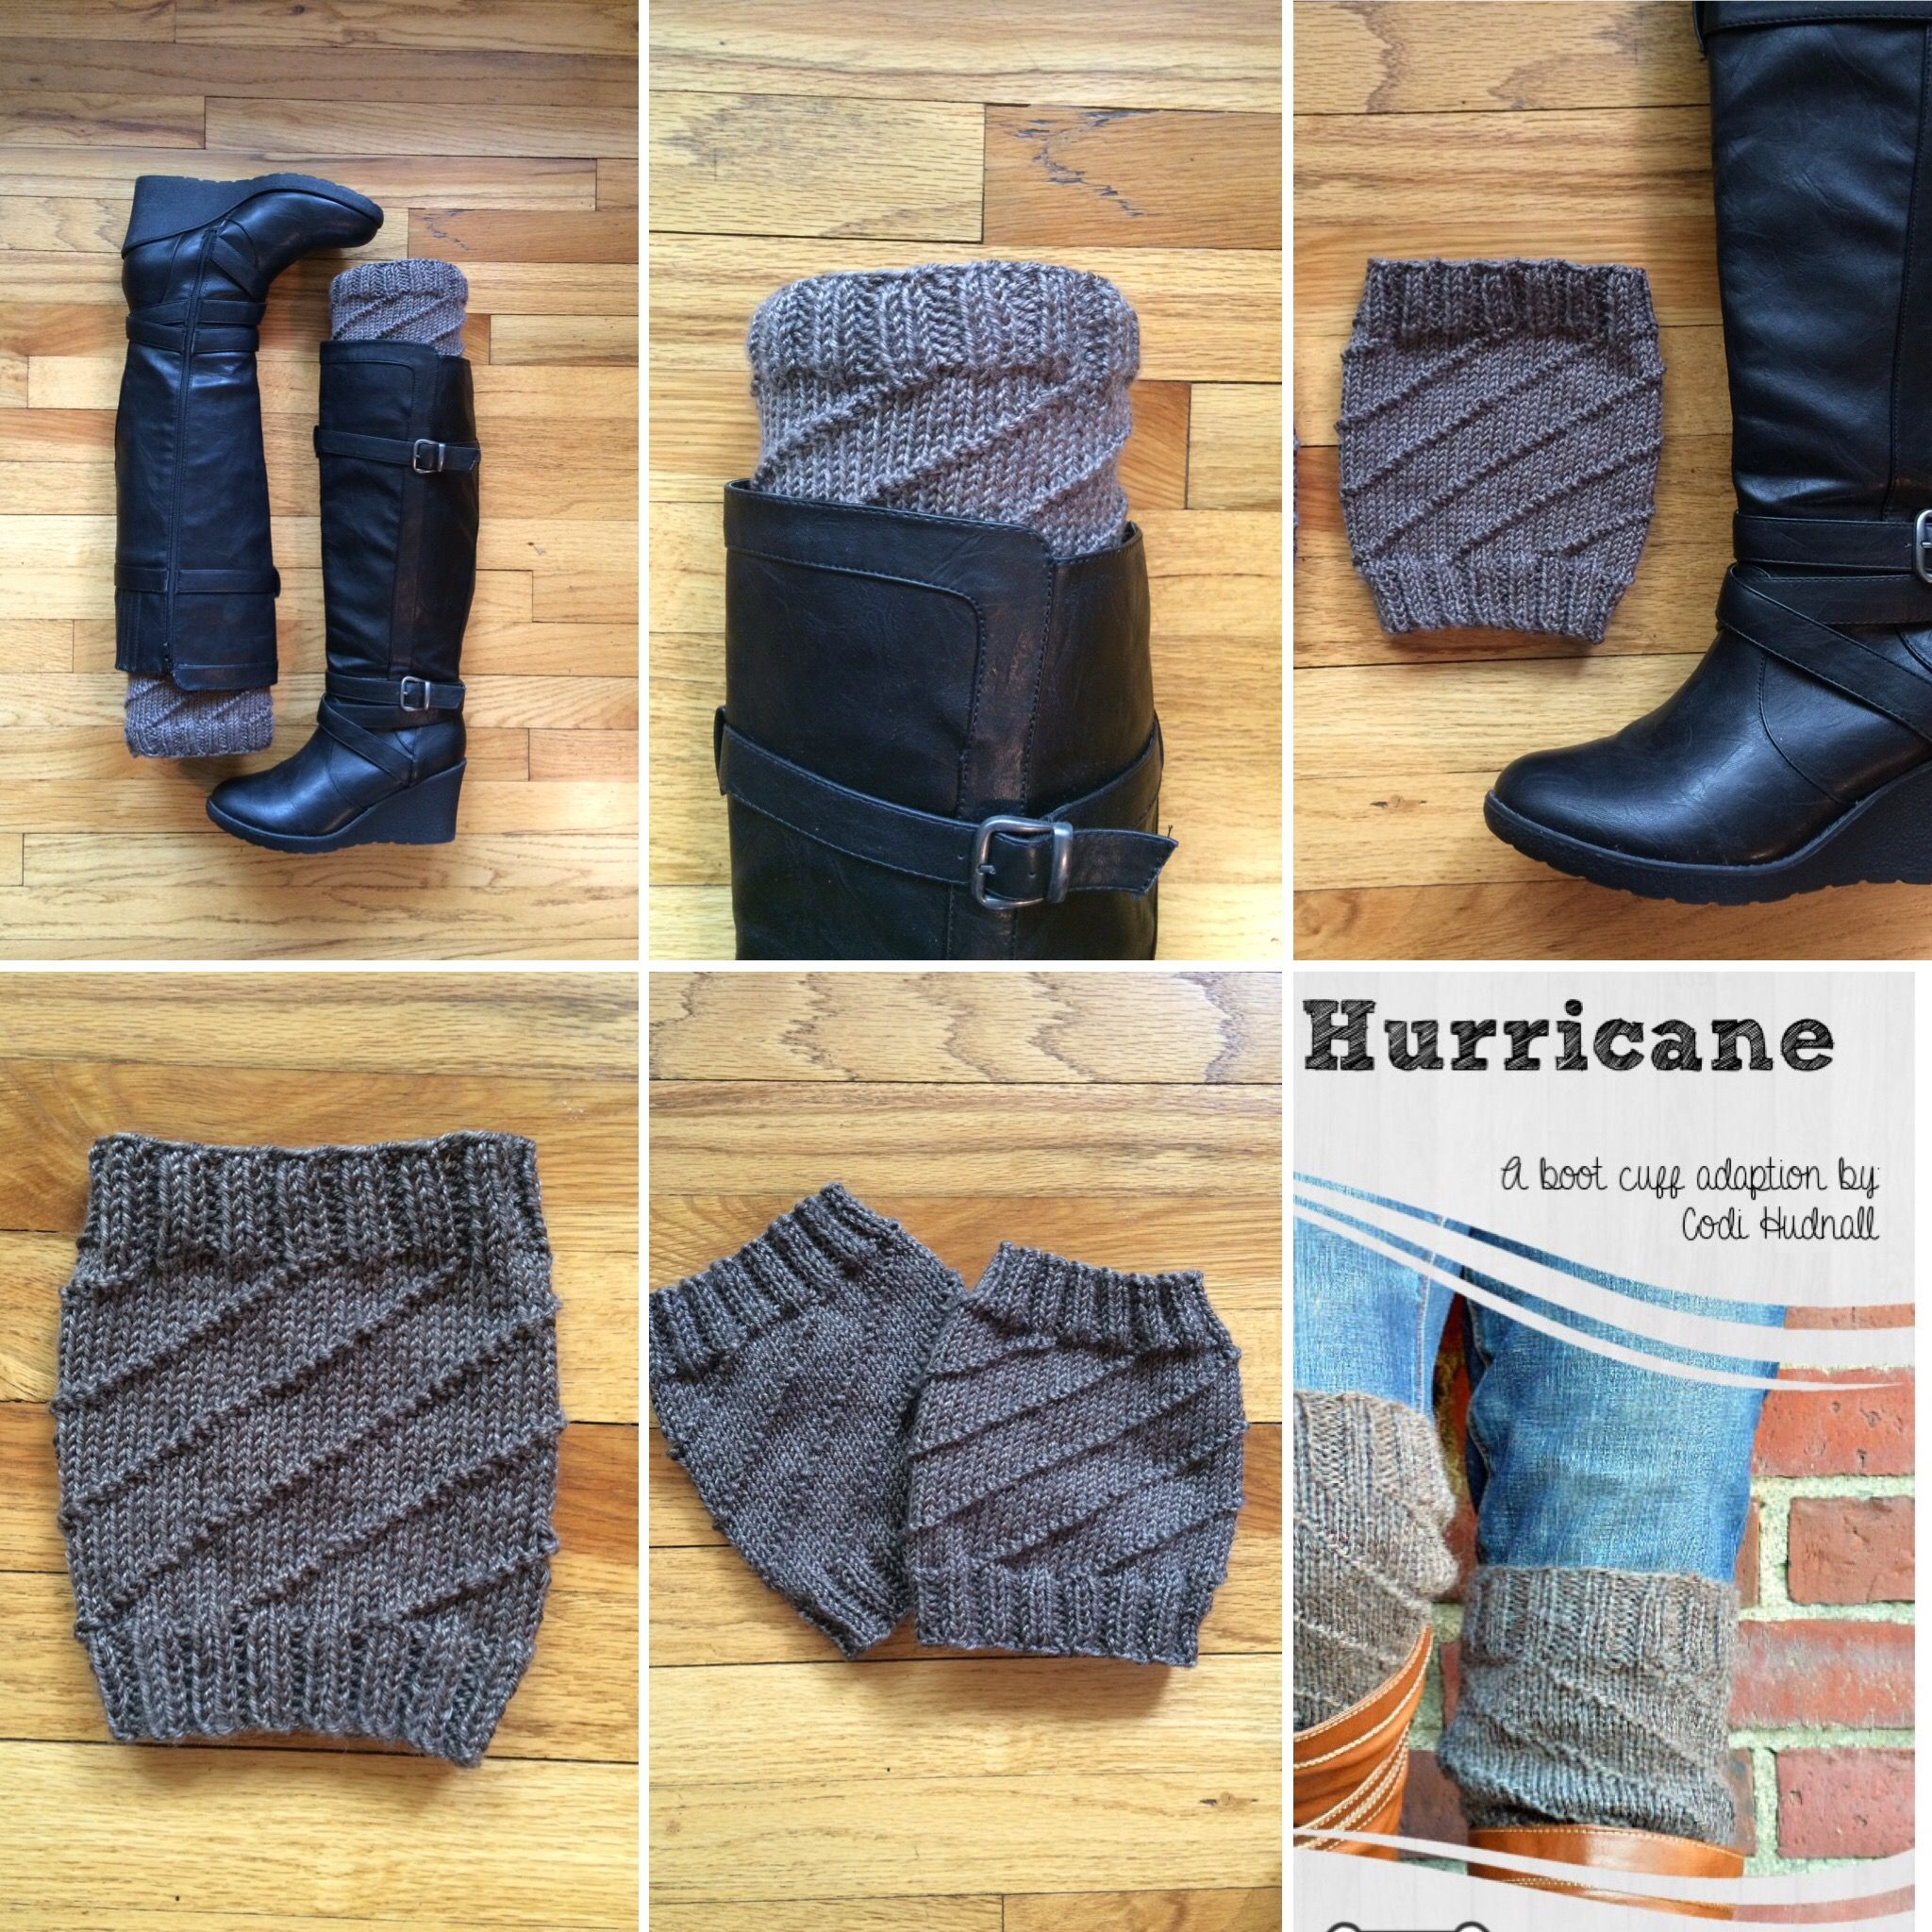 Knitted boot cuffs free pattern hurricane by codi hudnall on knitted boot cuffs free pattern hurricane by codi hudnall on craftsy includes 3 bankloansurffo Images